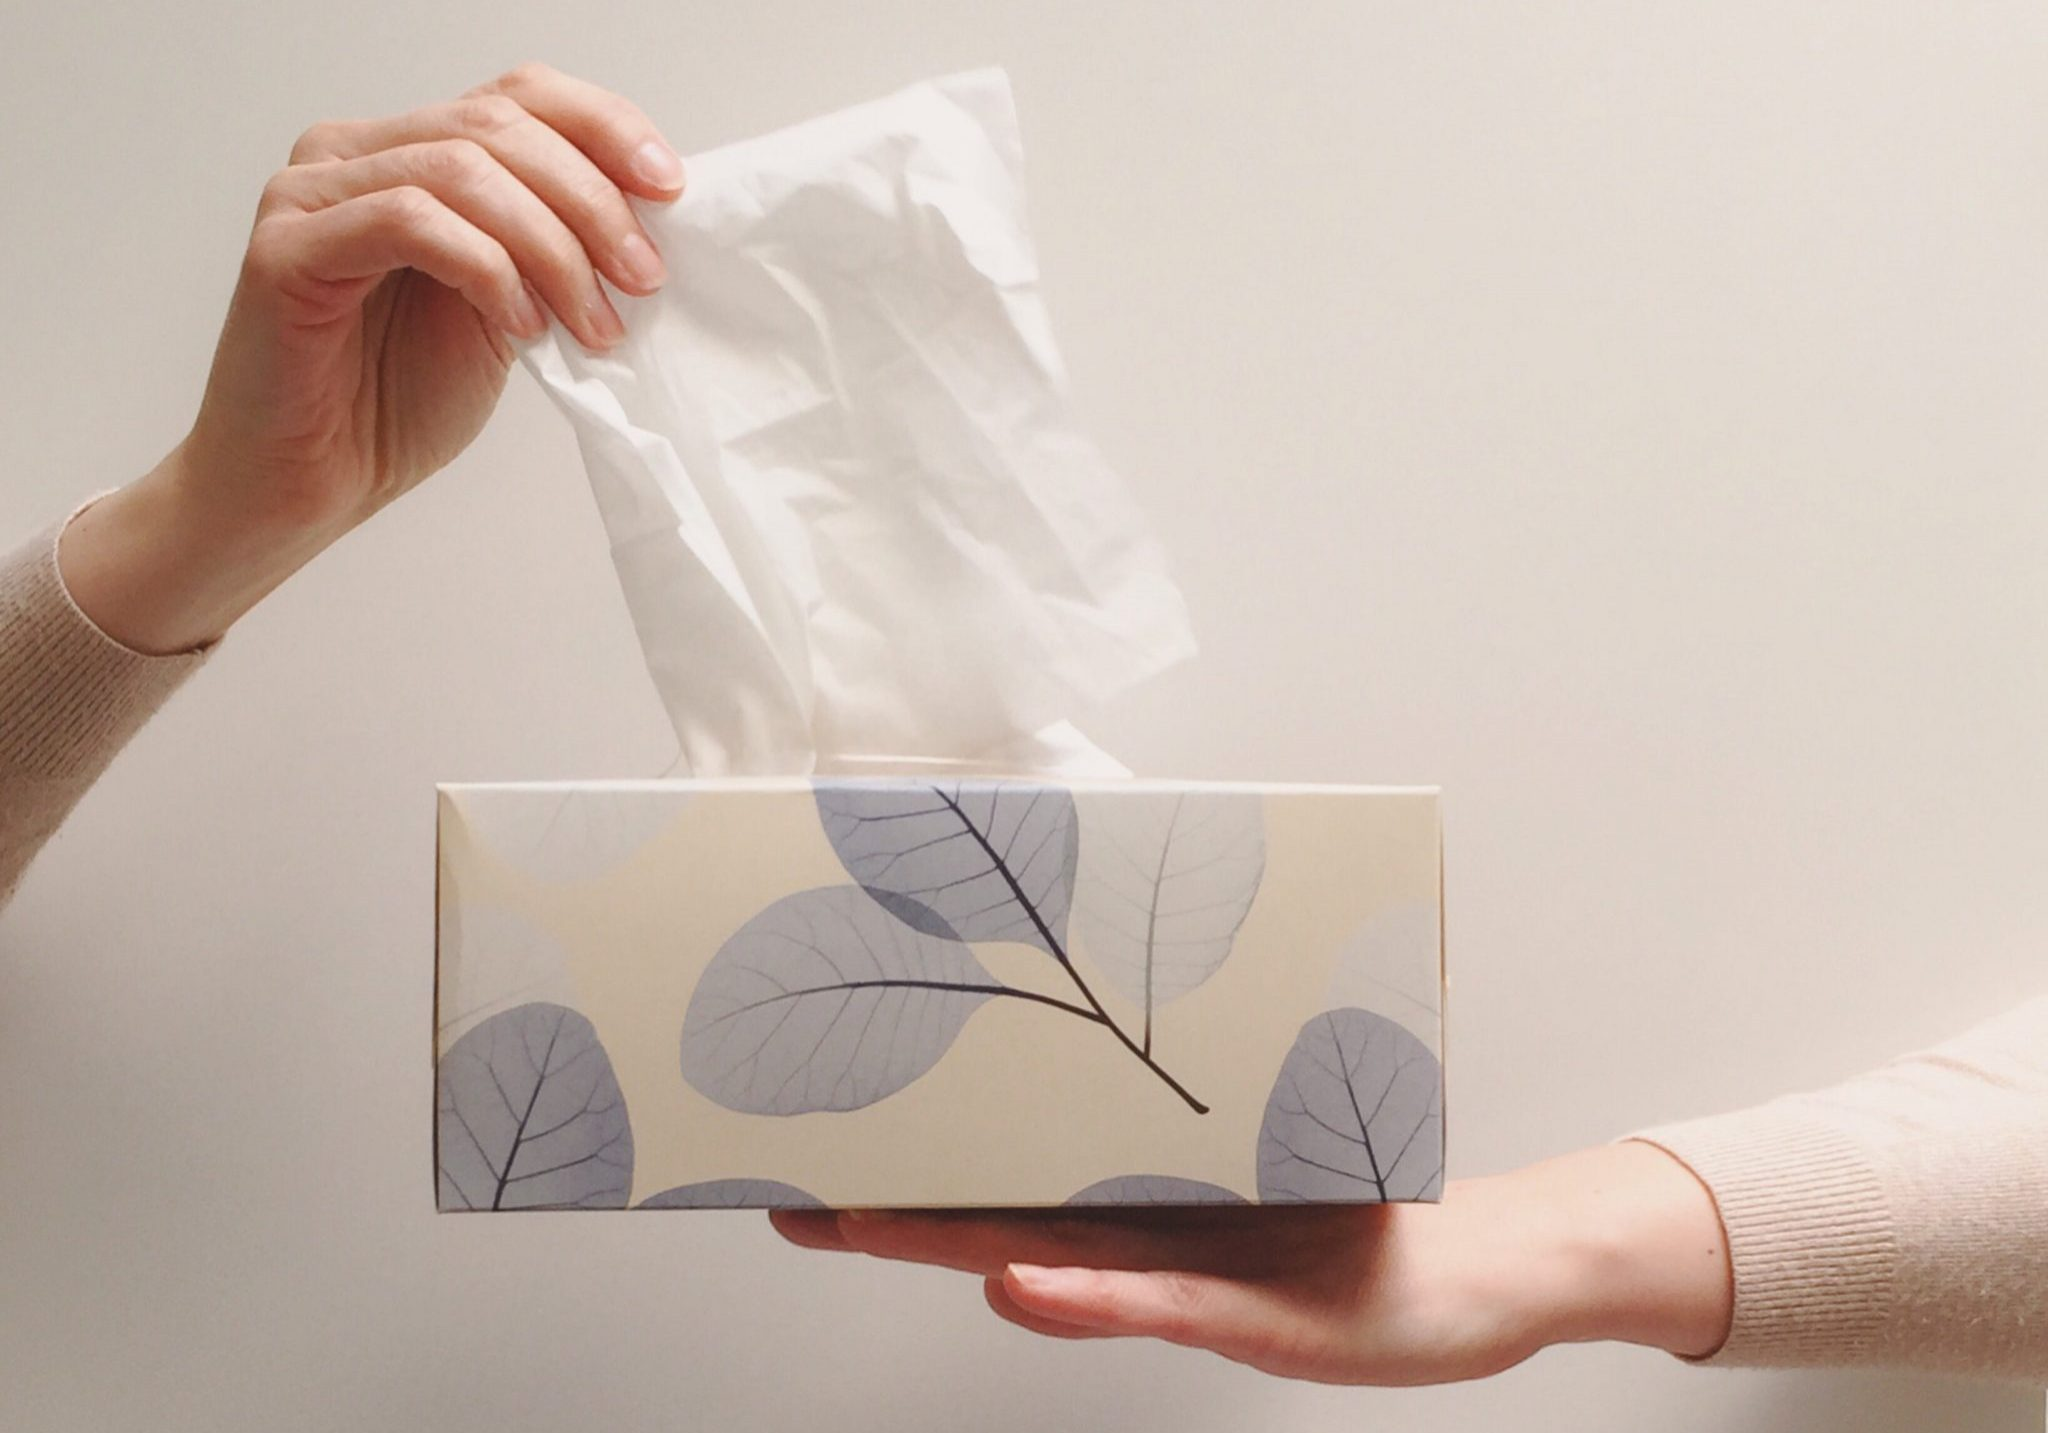 Hand taking tissue from a box